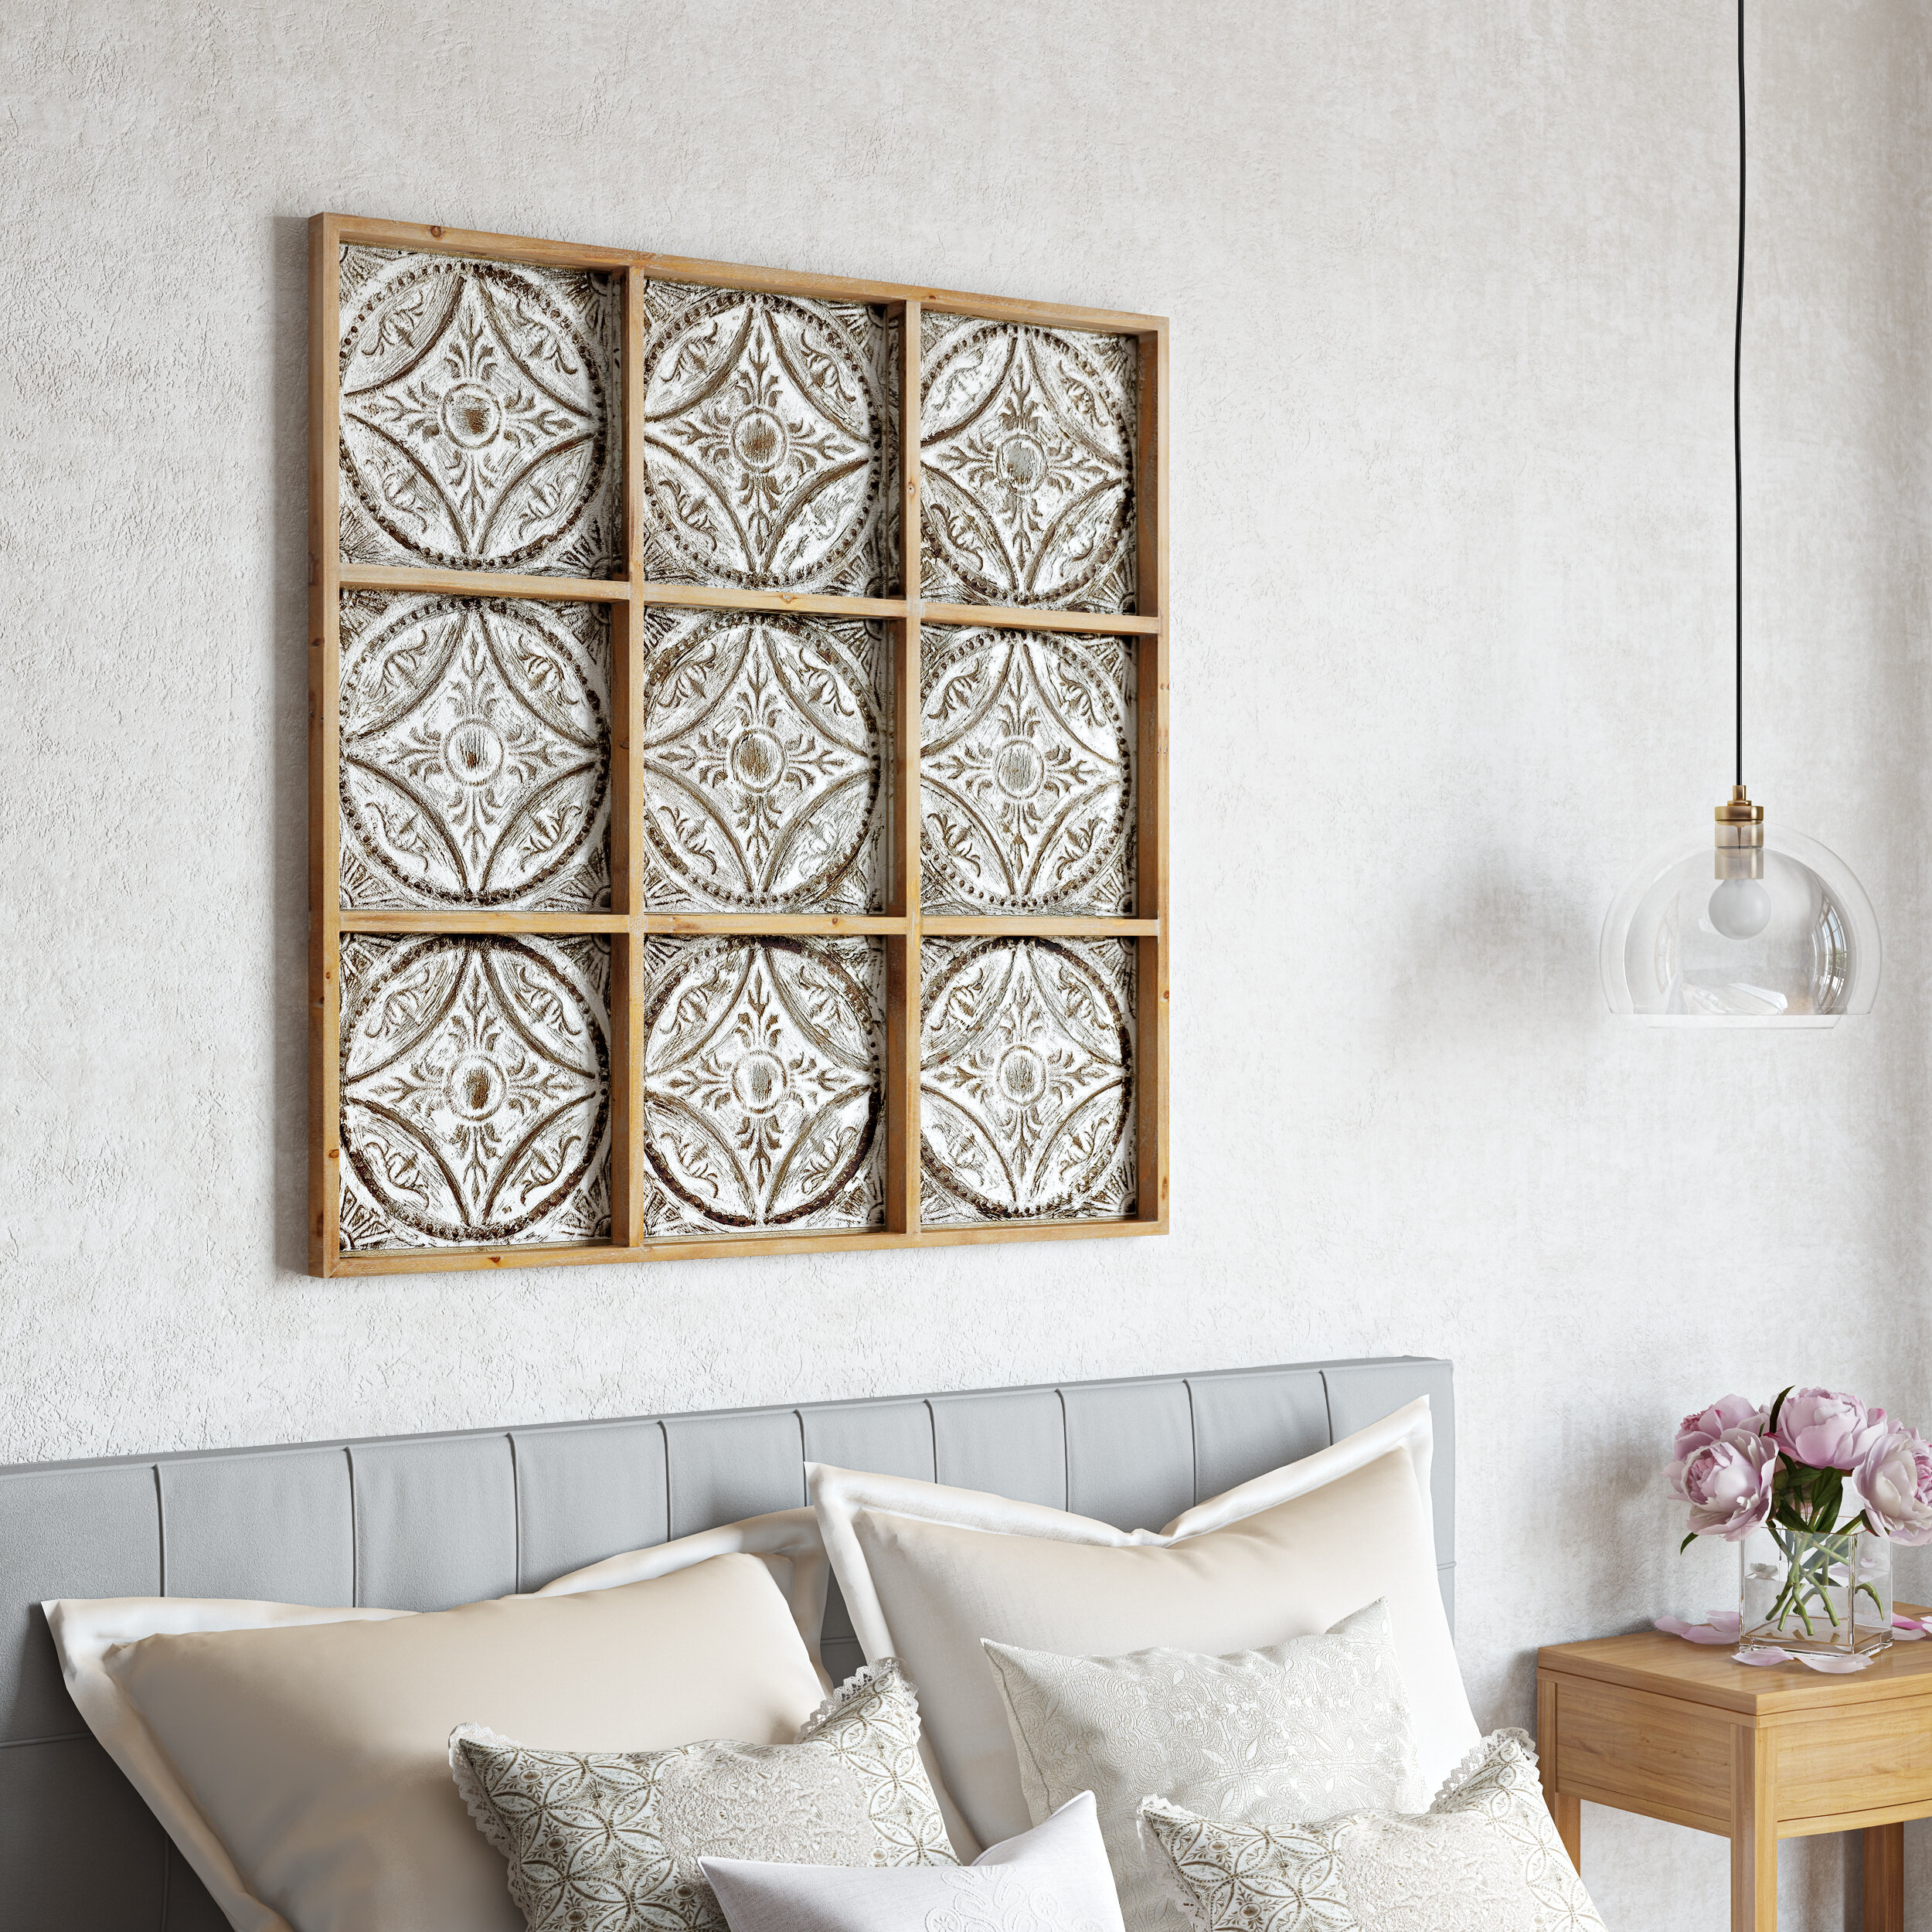 Large Wood Wall Décor Within 1 Piece Ortie Panel Wall Decor (View 20 of 30)